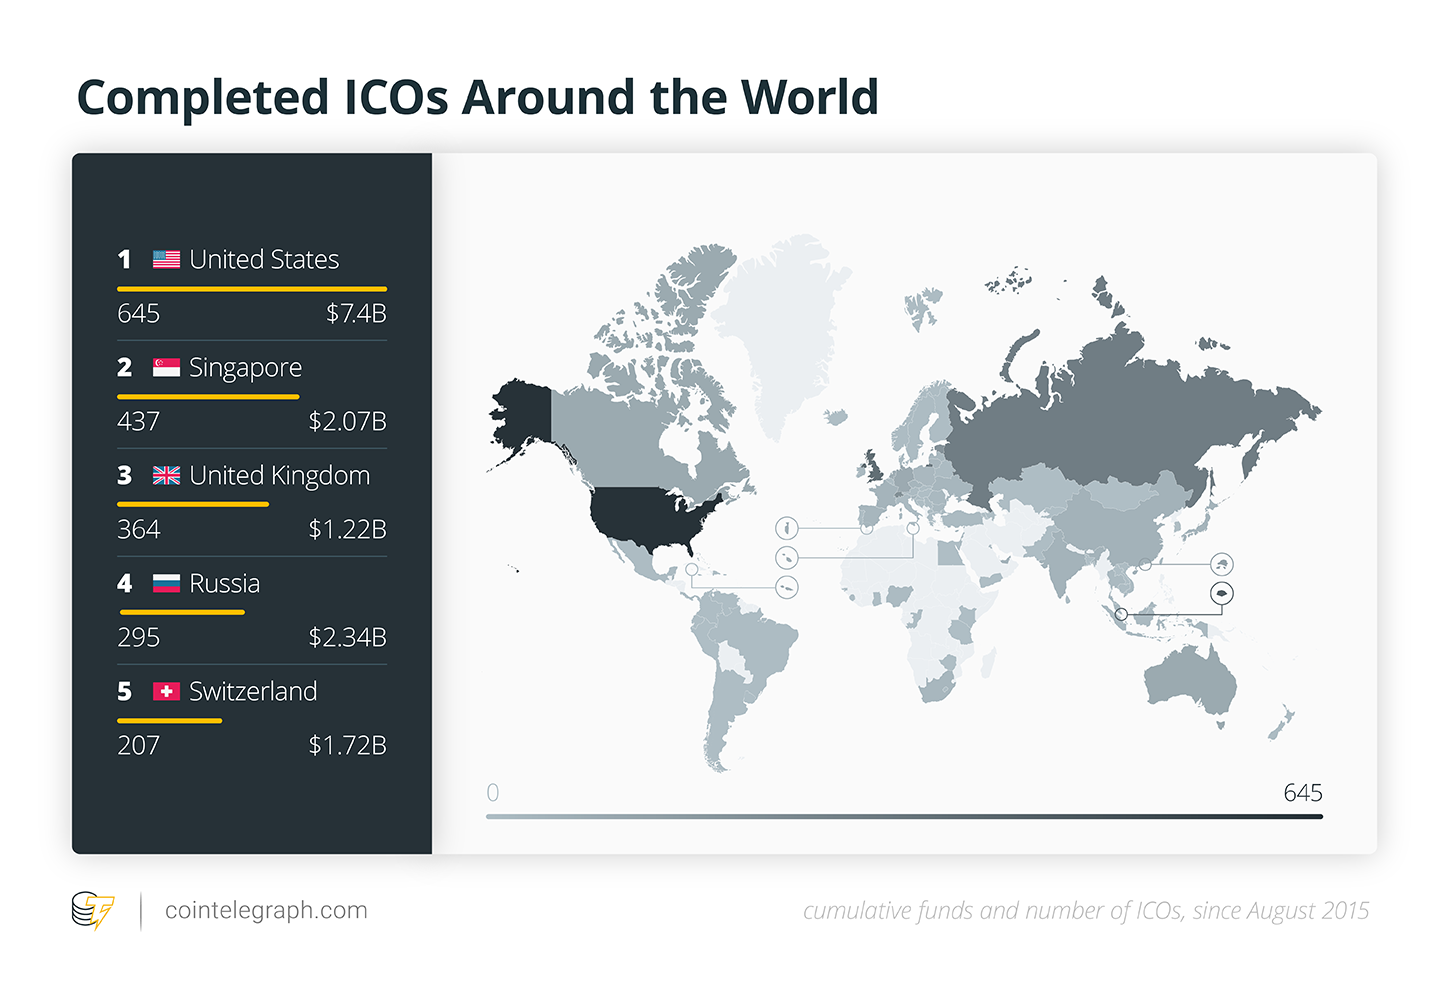 Complete ICOs Around the World